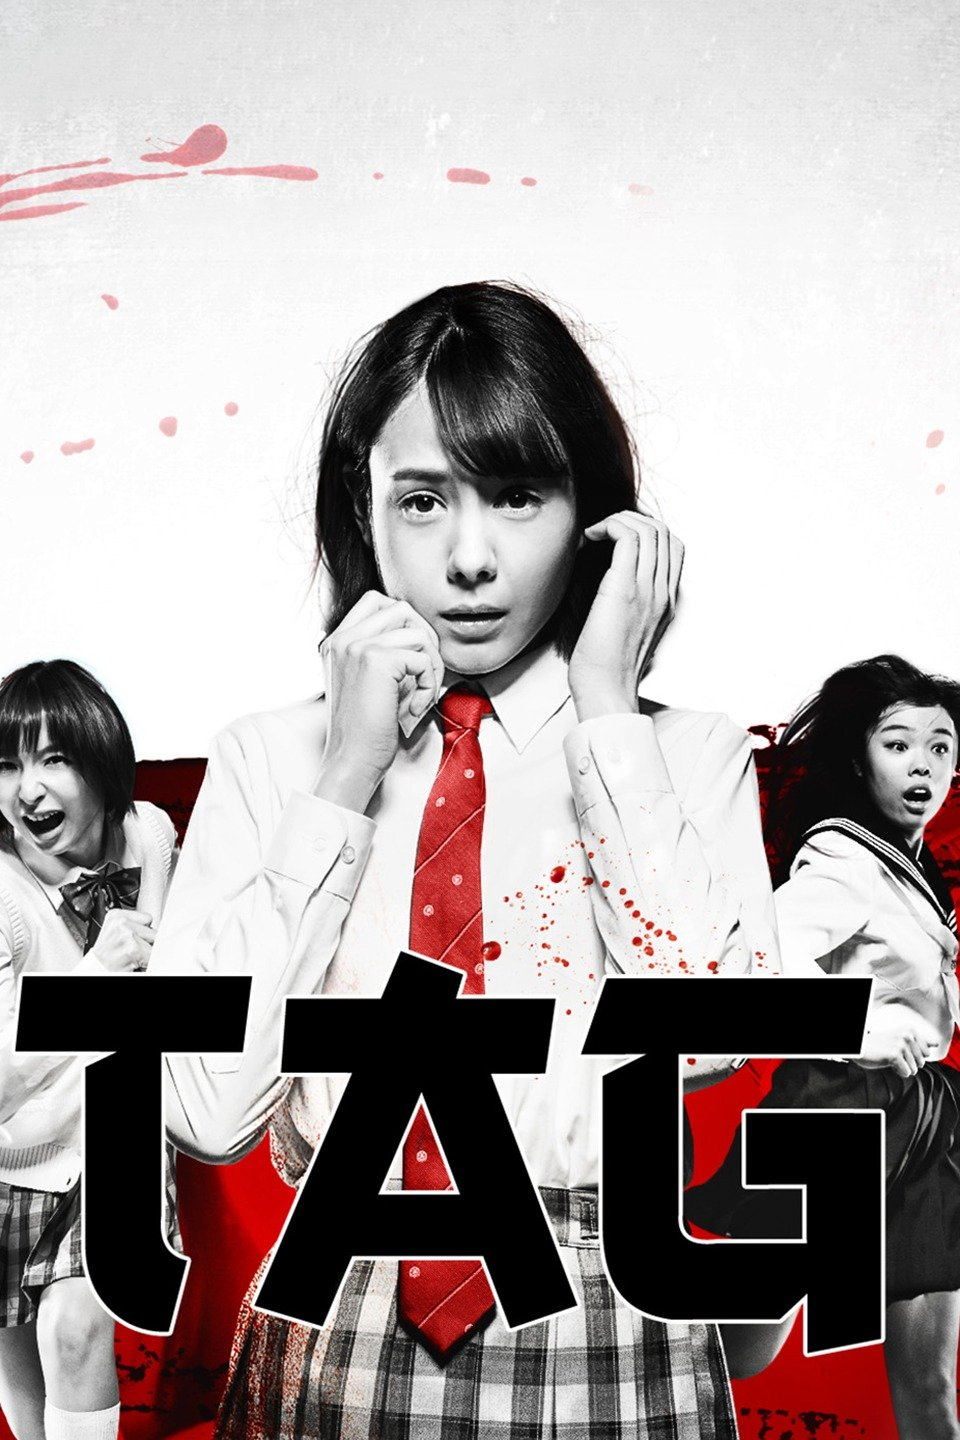 Tag (2015) - Directed by: Sion SonoStarring: Reina Triendl, Mariko Shinoda, Erina ManoRated: NR (Suggested R for Bizarre Graphic Violence and Some Suggestive Material)Running Time: 1 h 25 mTMM Score: 3.5 stars out of 5STRENGTHS: Unconventional Story, InsanityWEAKNESSES: Effects, Might Not Play As Well With Western Audiences